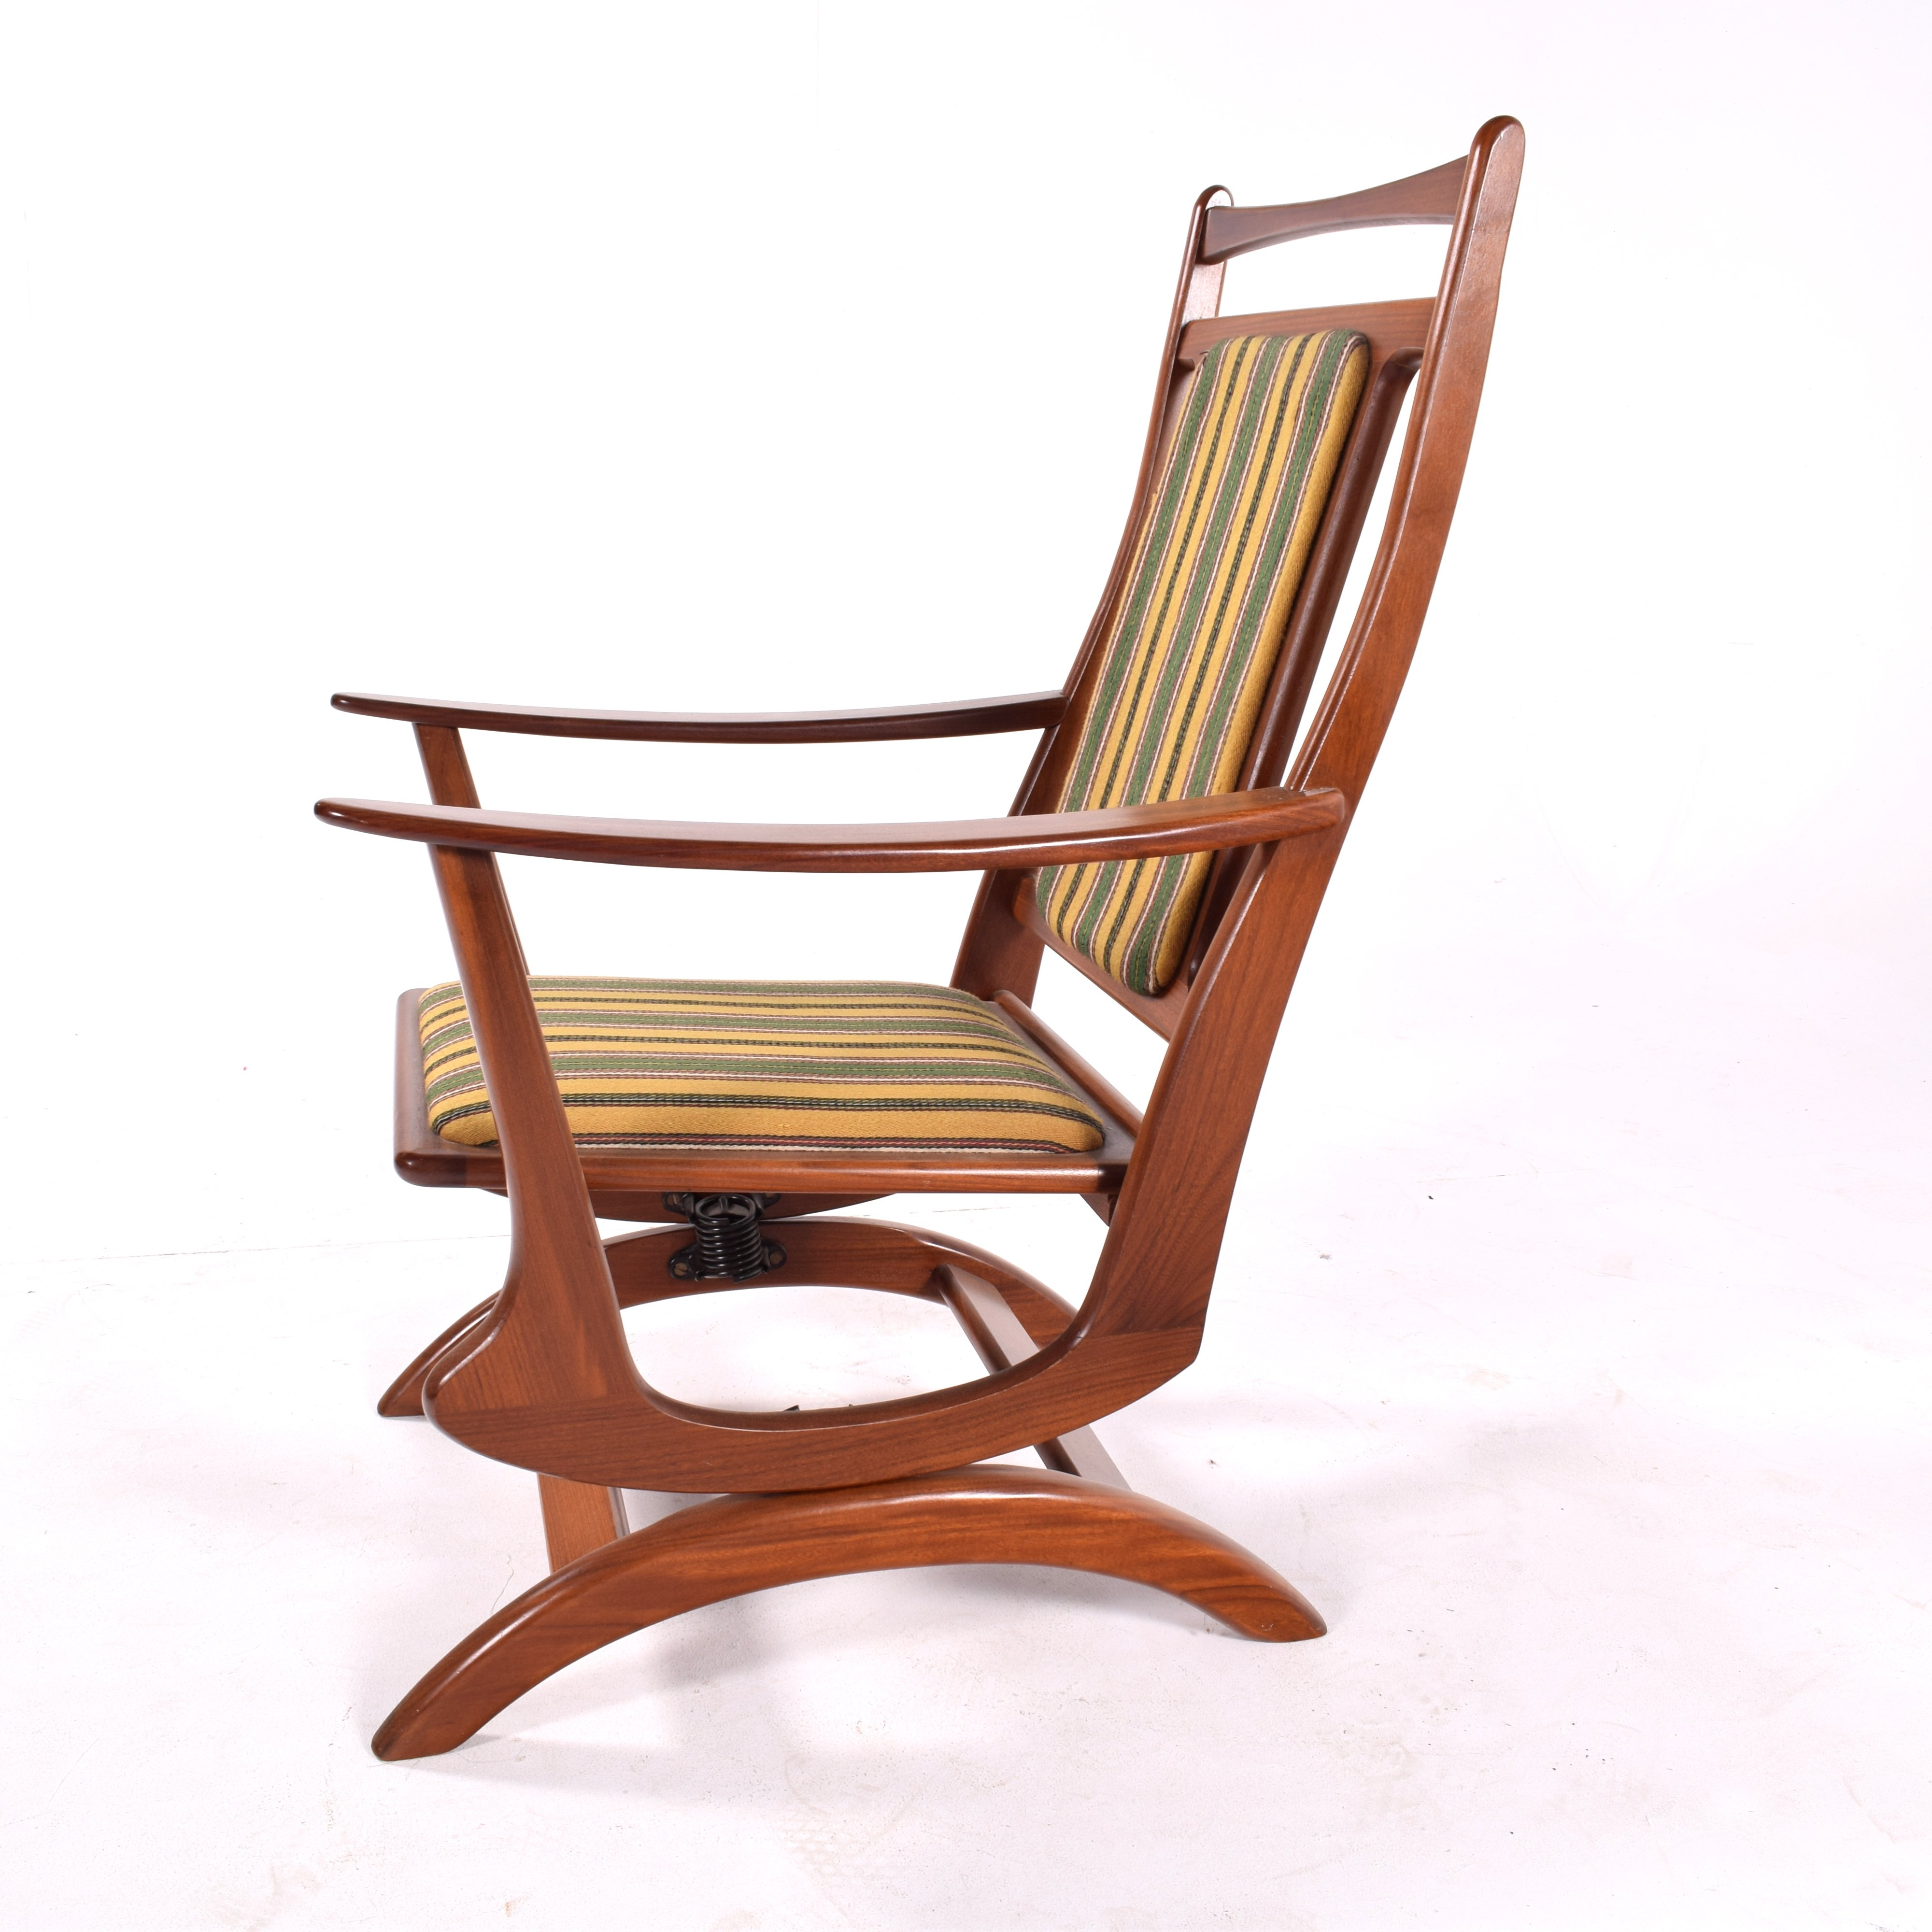 Amazing Midcentury Danish Spring Rocking Chair Gmtry Best Dining Table And Chair Ideas Images Gmtryco